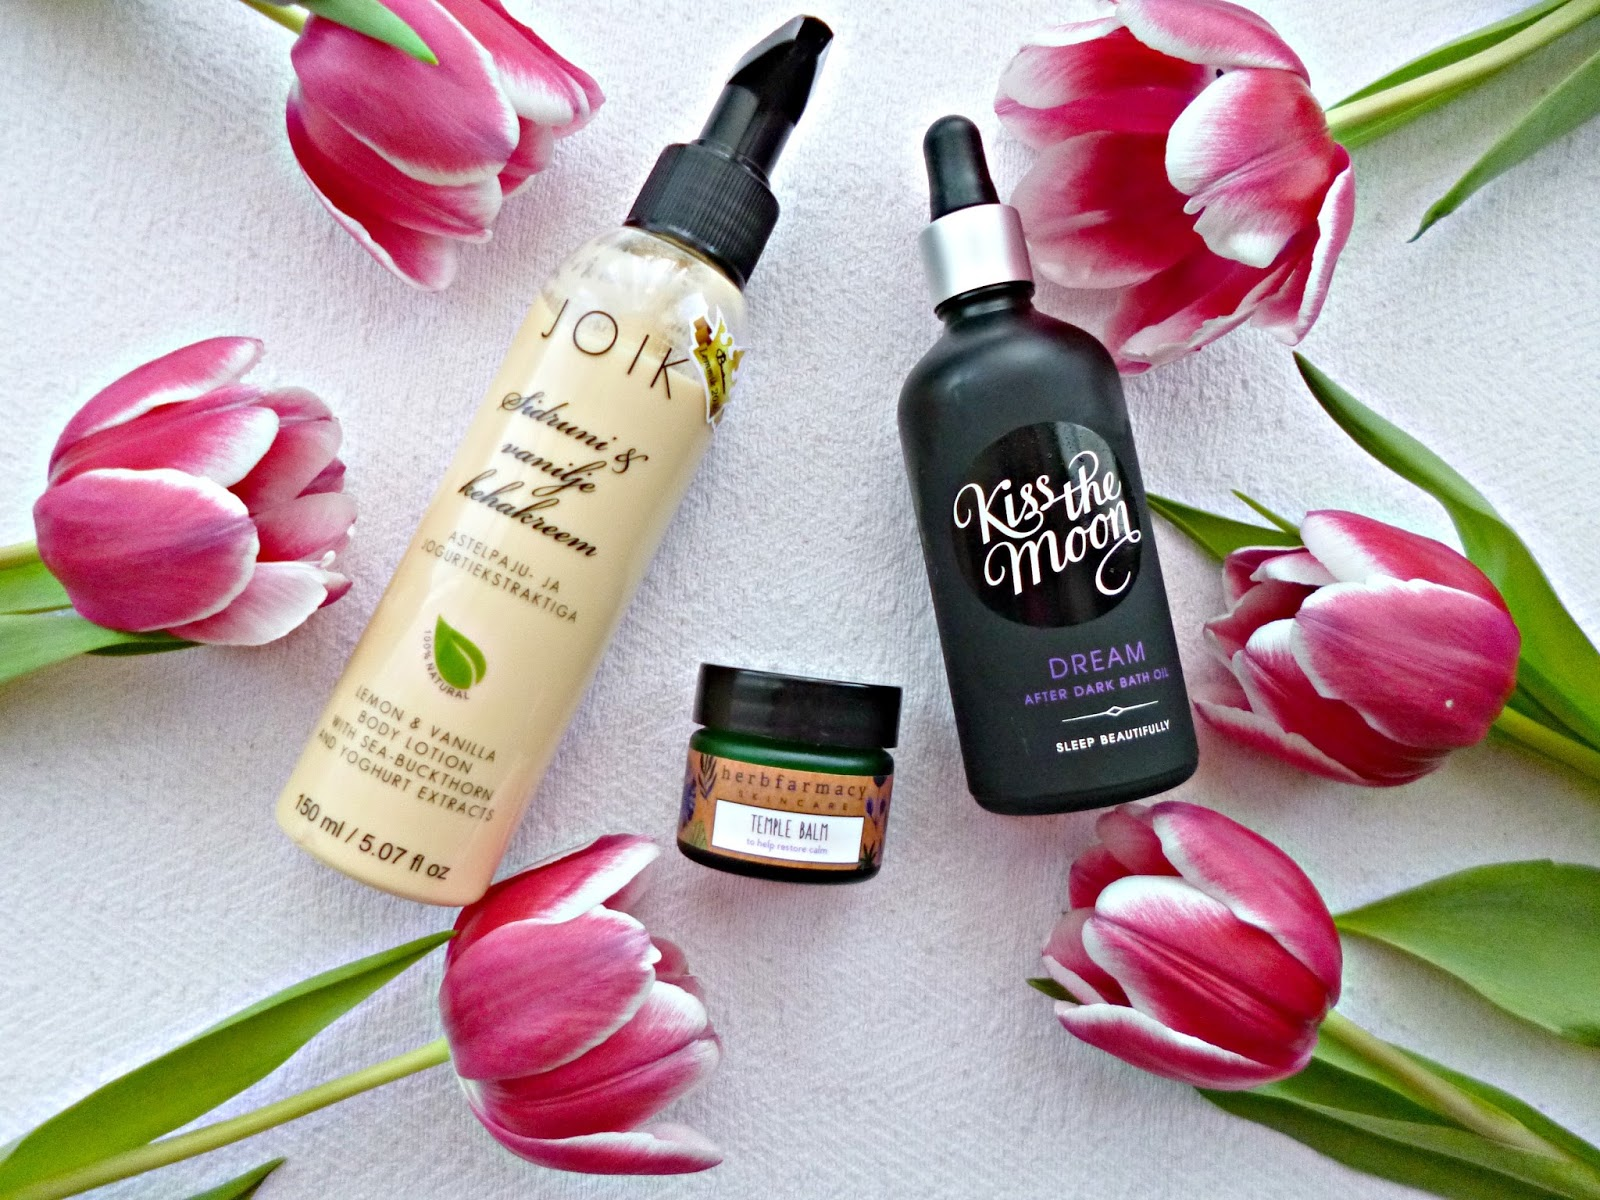 Three pampering products: Joik, Herbfarmacy and Kiss the Moon